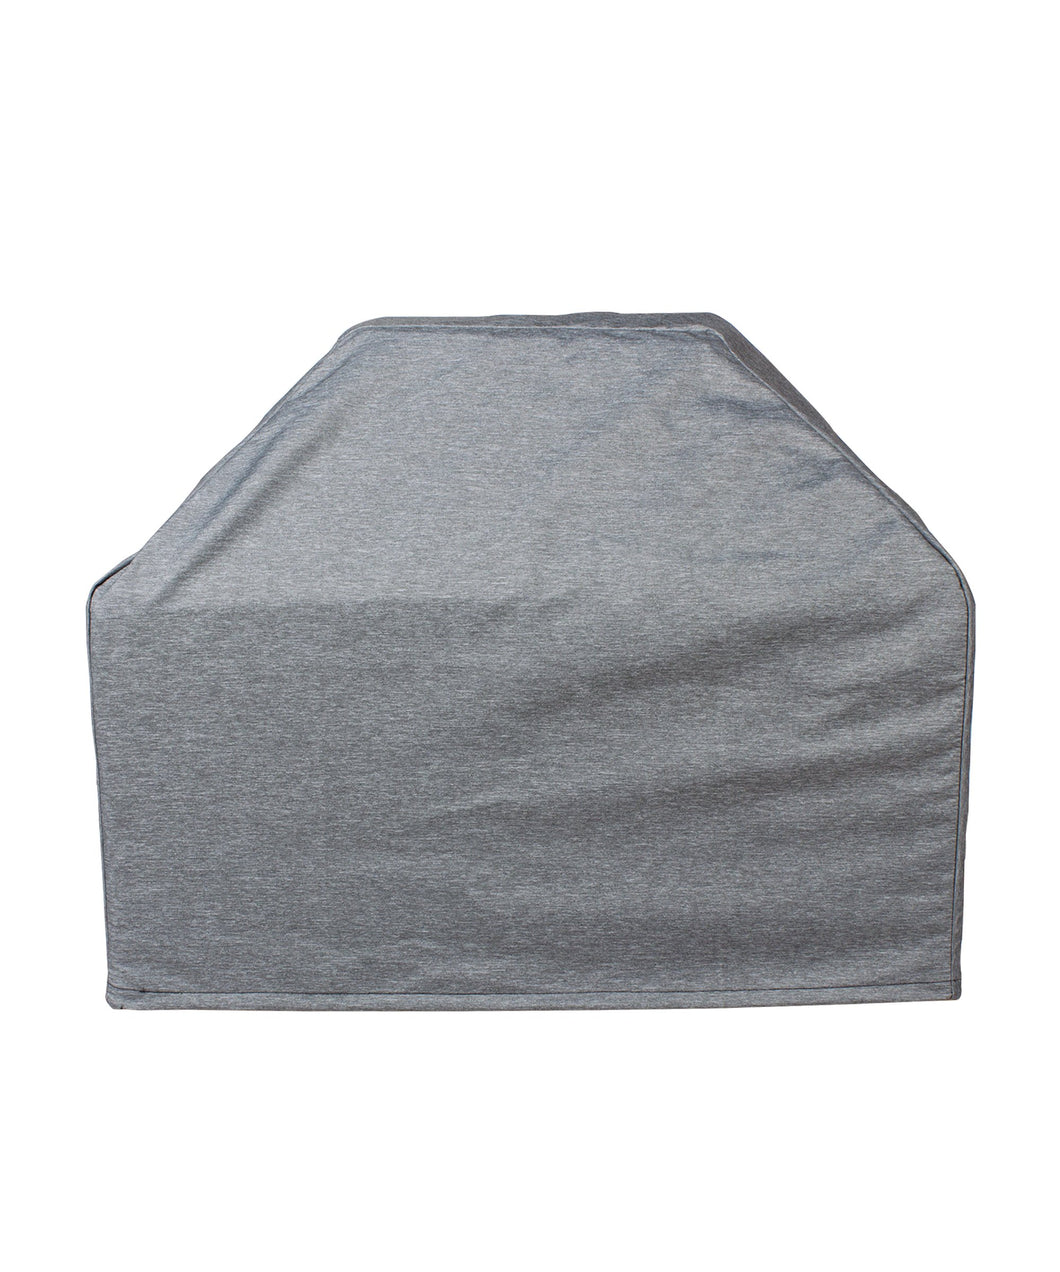 Grill Cover Platinum 32